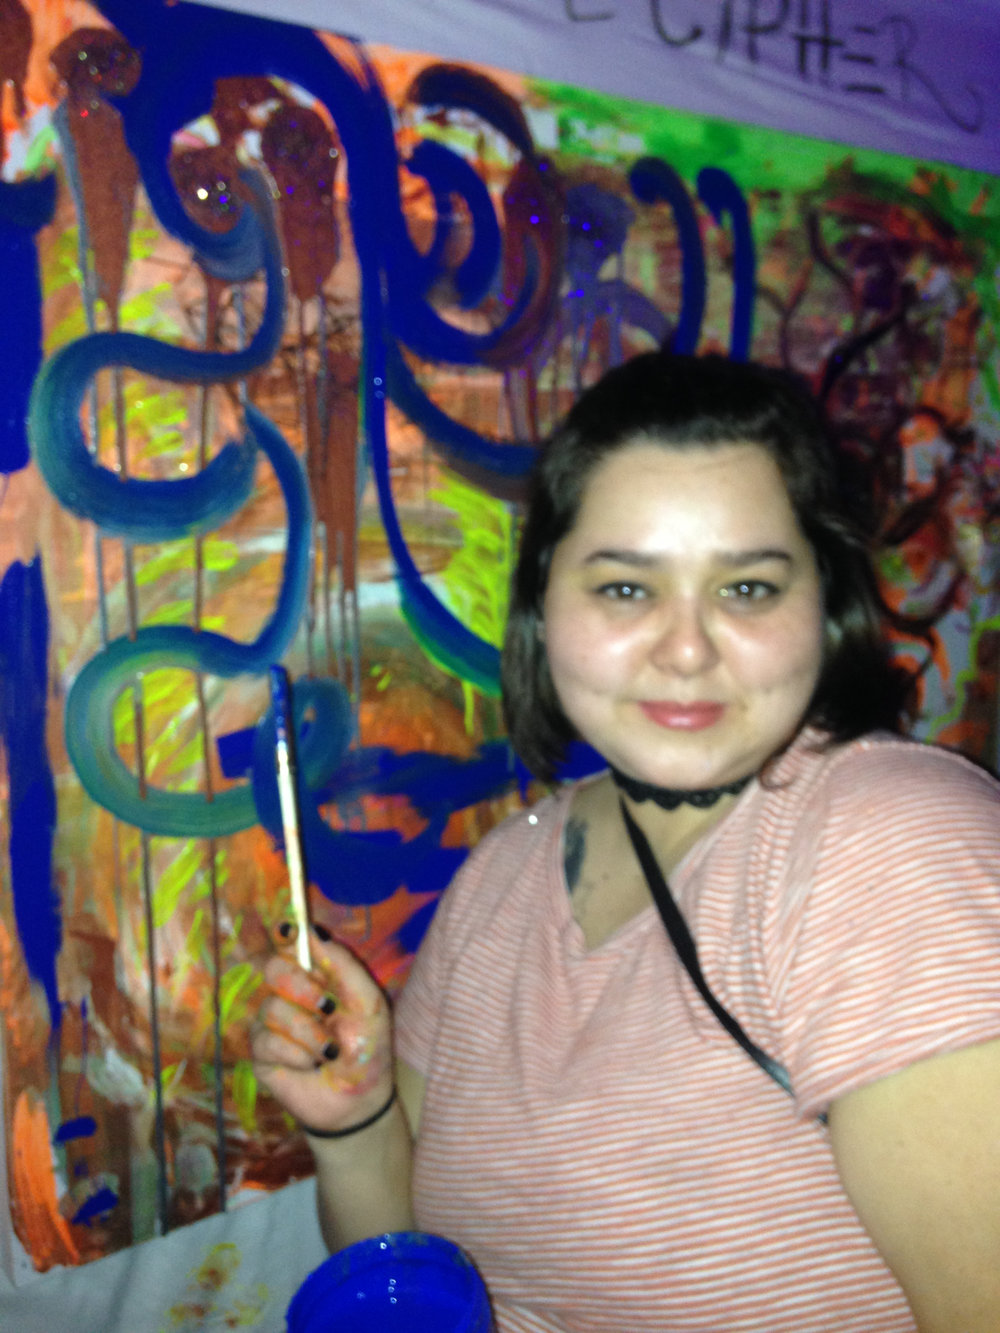 - Julie Hernandez showing off group painting at The Castle (Brooklyn, NY)